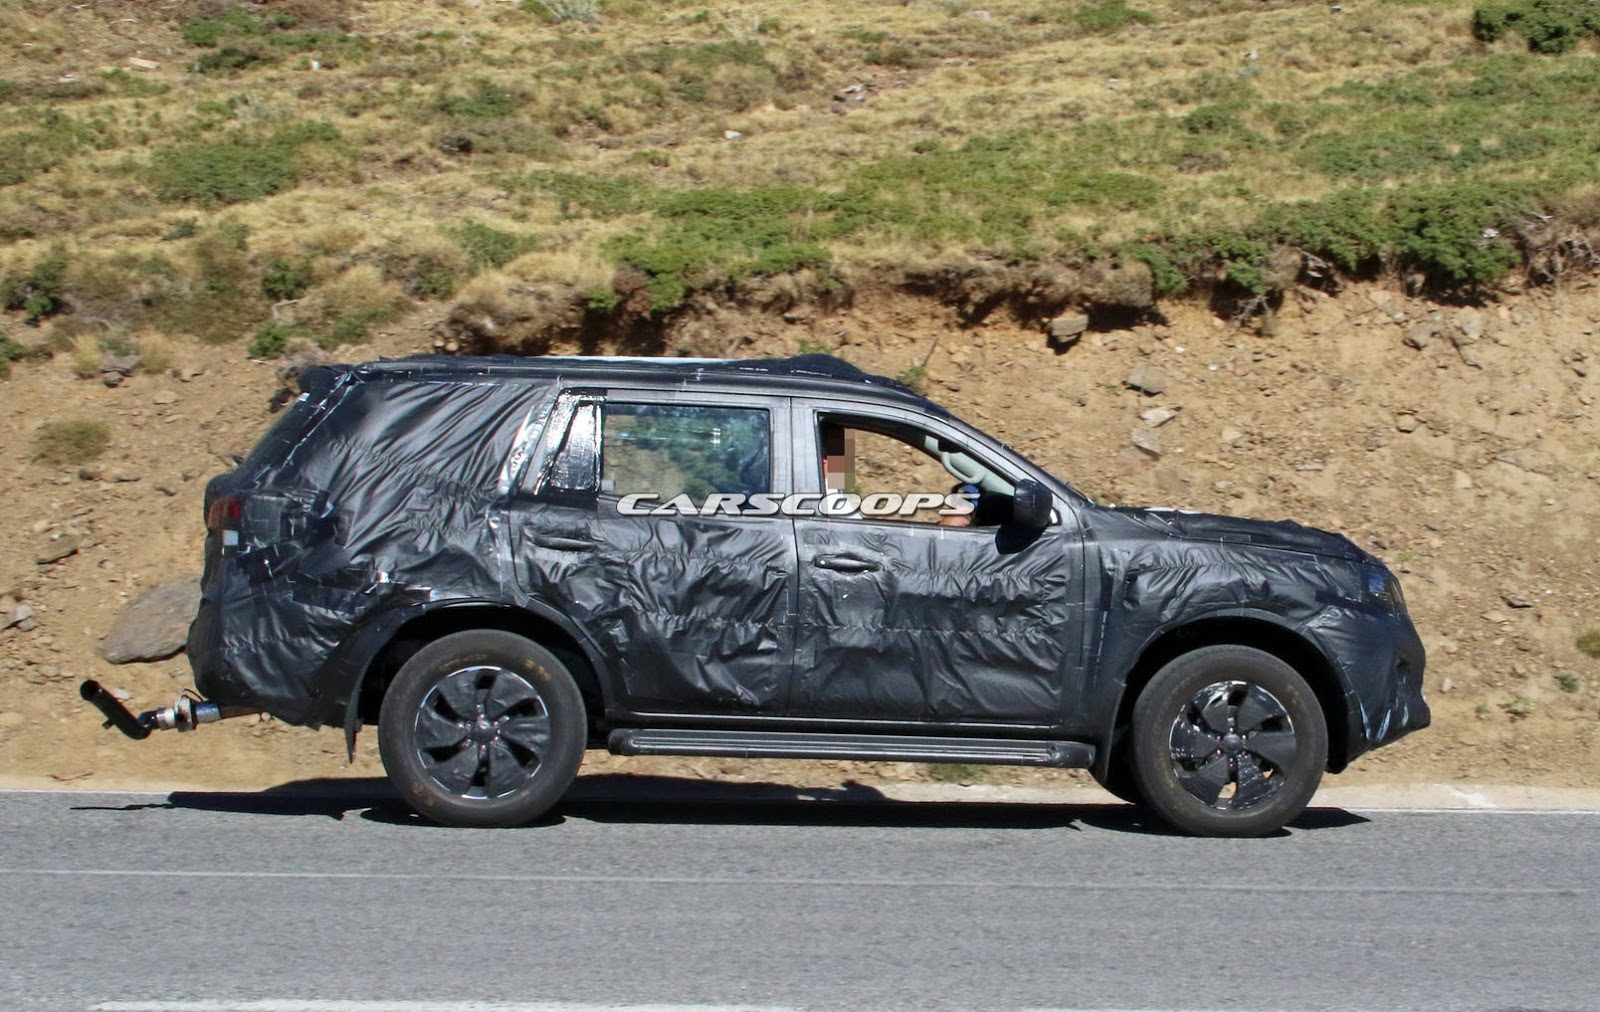 New Nissan Navara Based Suv Spied Could This Be The Next